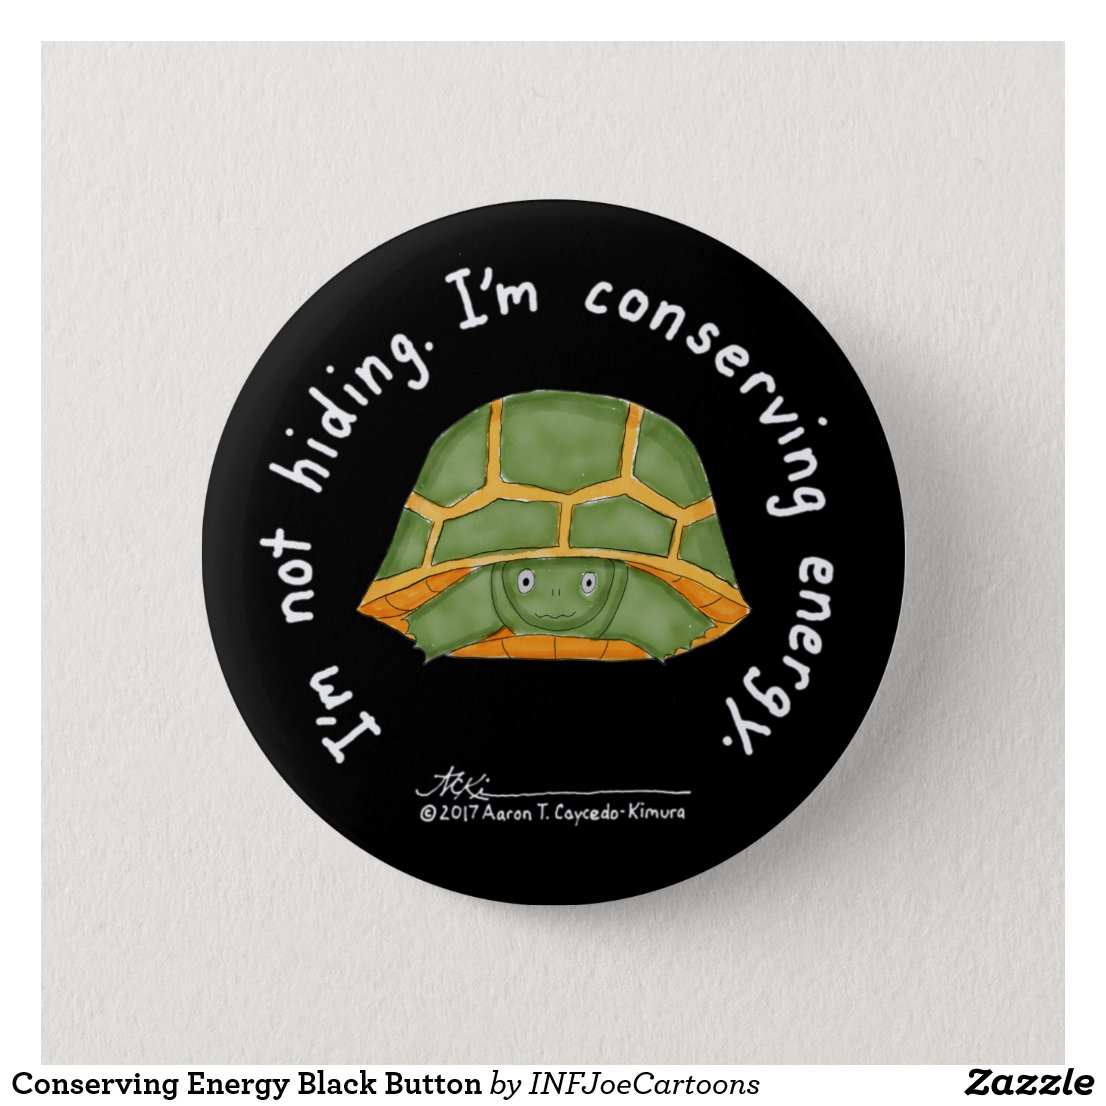 Conserving Energy Black Button